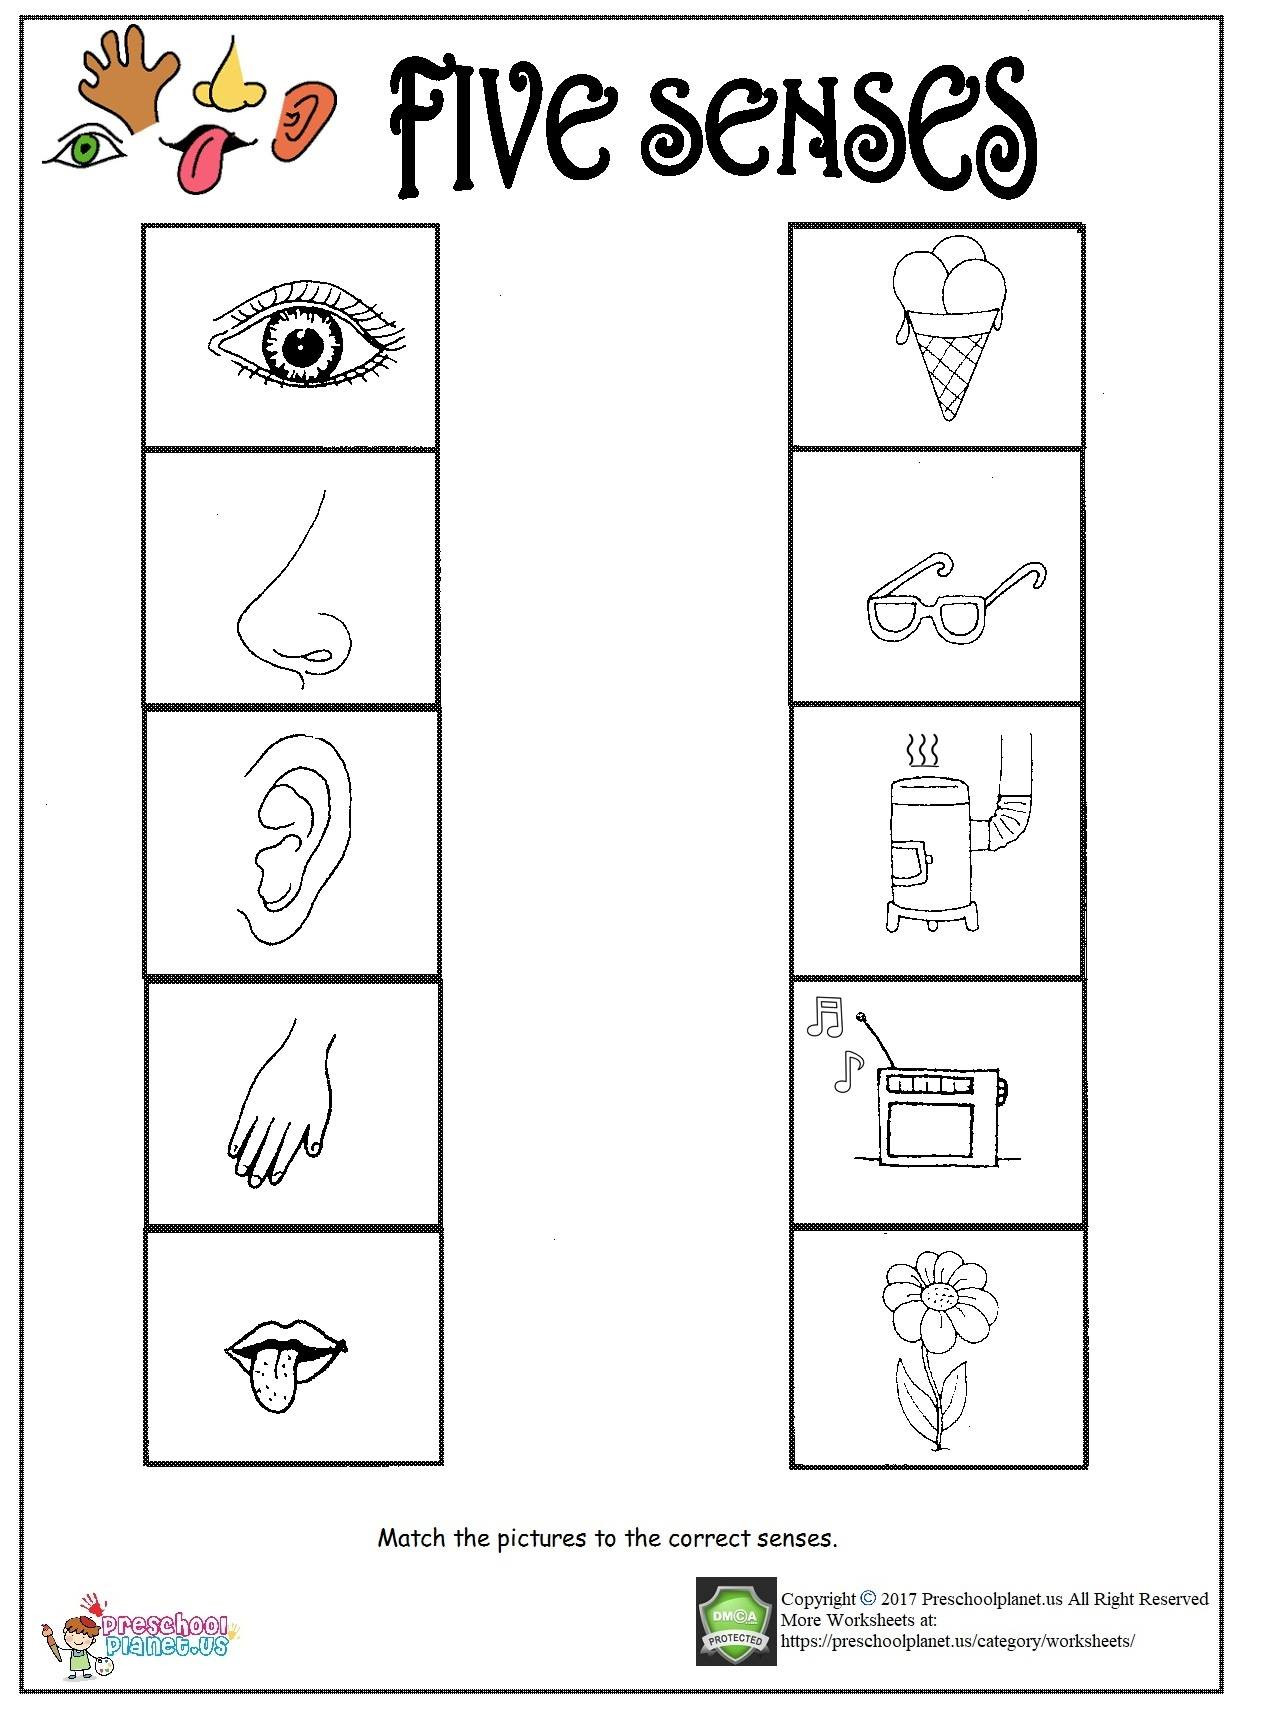 Recycle Worksheets for Preschoolers Printable Five Senses Worksheet – Preschoolplanet